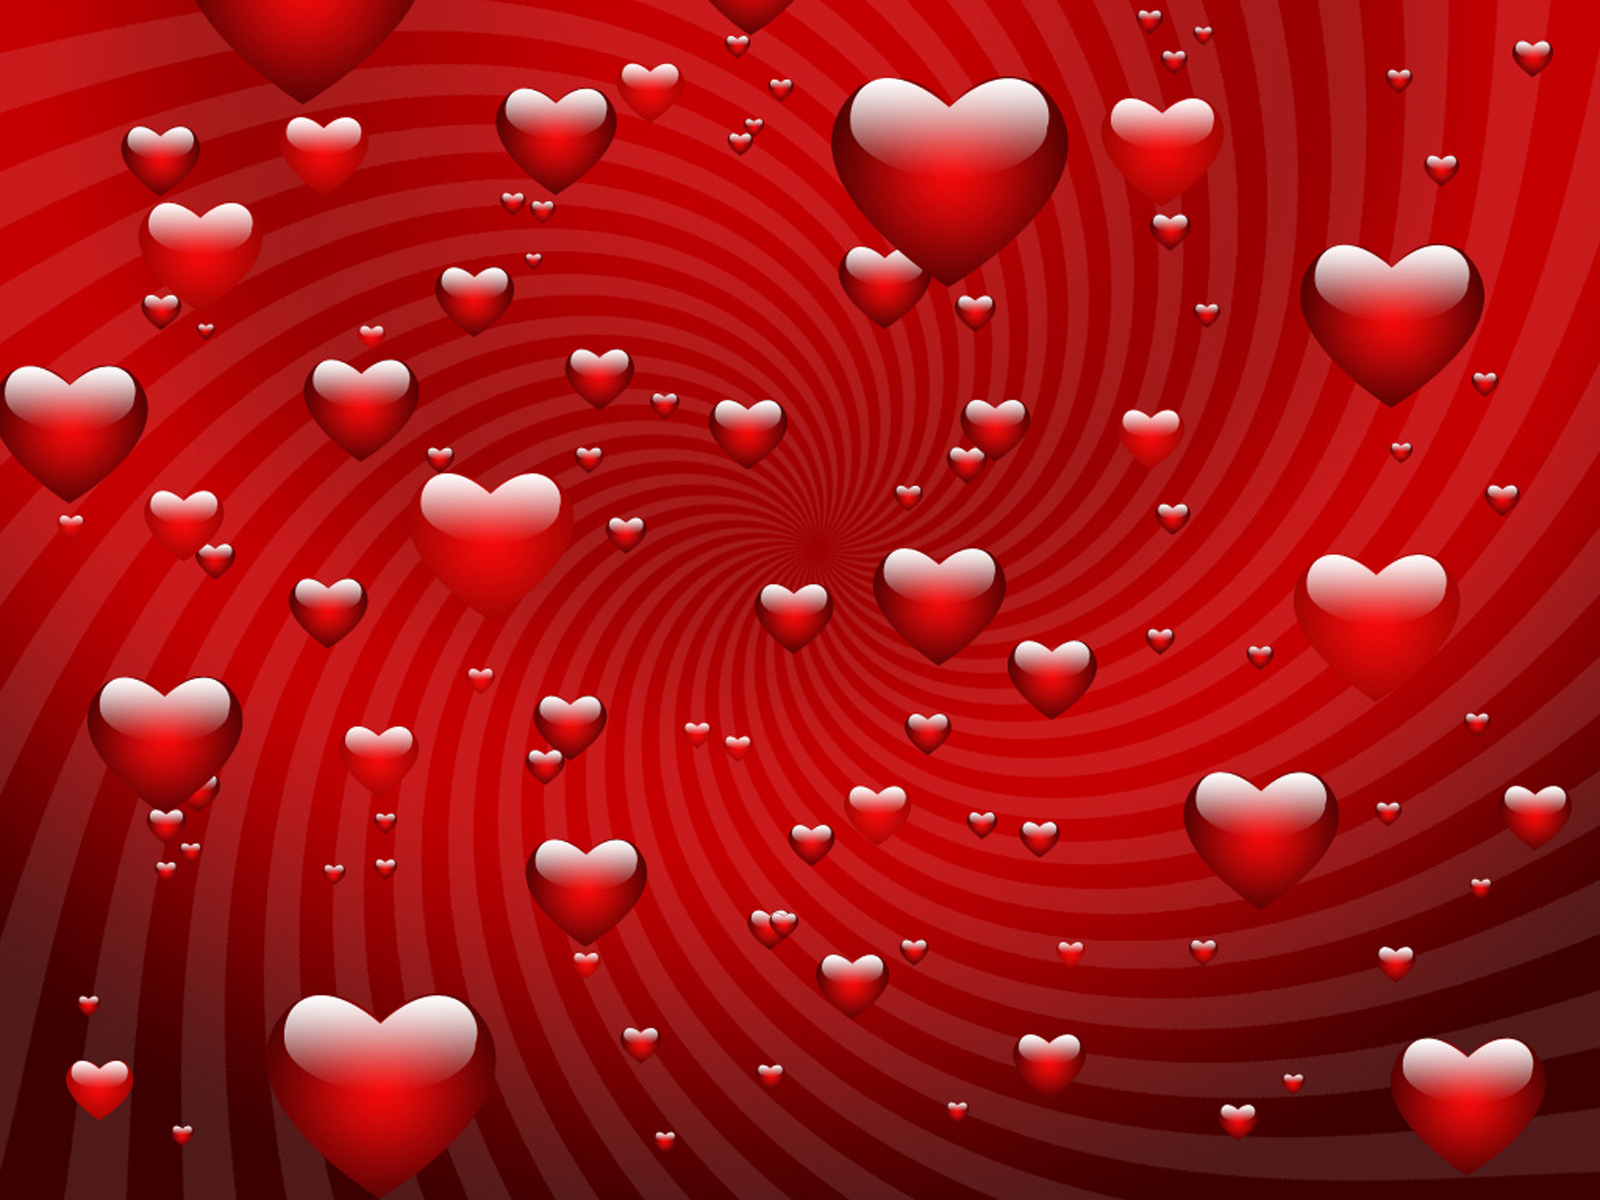 40 Beautiful Valentines Day Wallpapers For Desktop 1600x1200